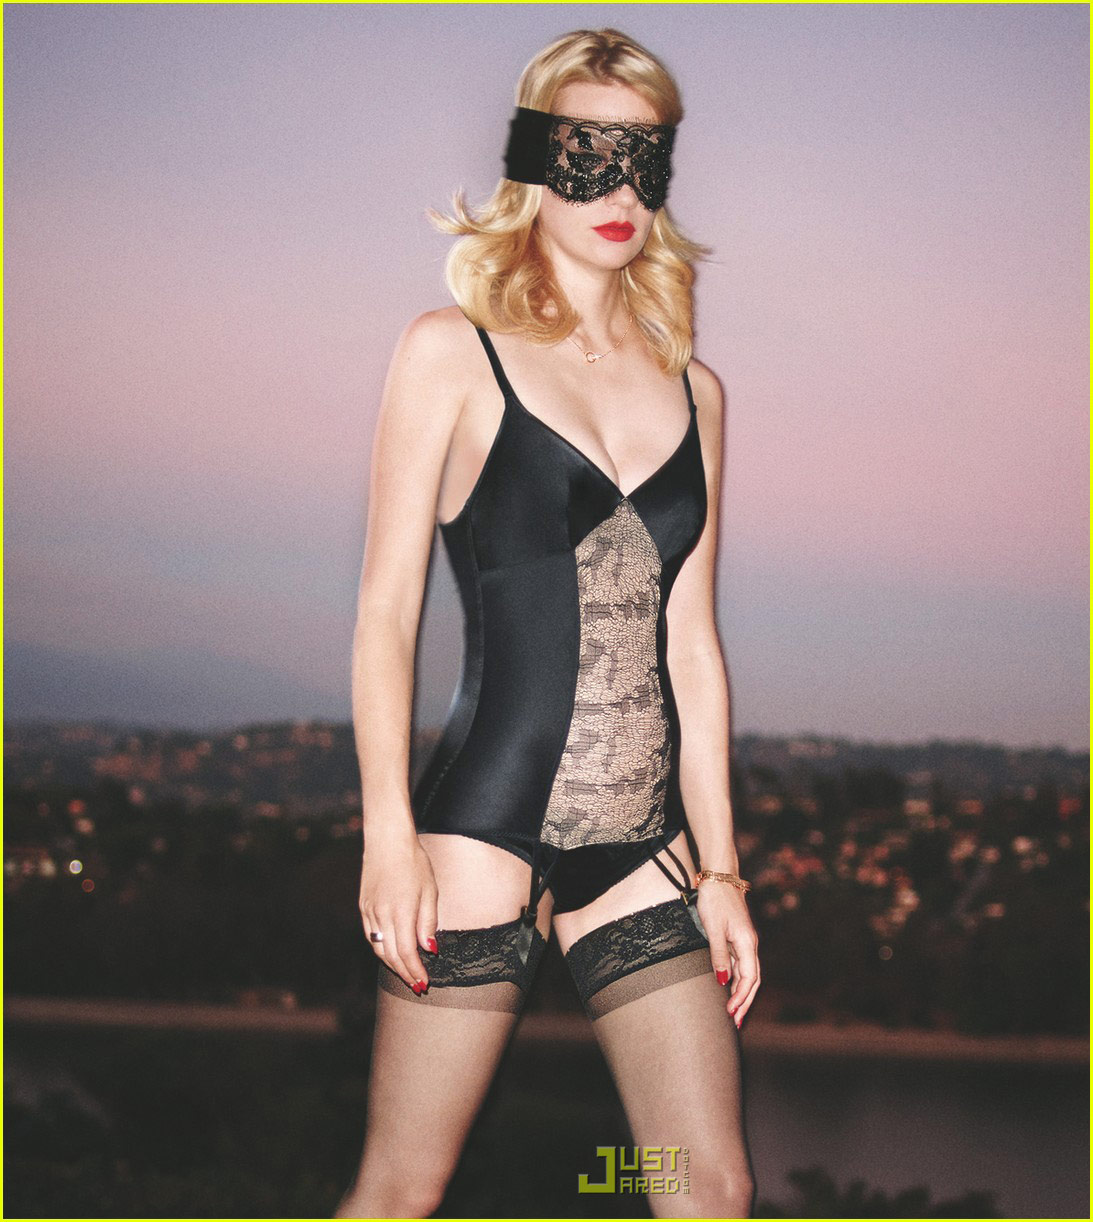 http://2.bp.blogspot.com/_PjXFx2YXWJA/THeYRDGEZqI/AAAAAAAAAXo/wbKuNE35uXw/s1600/january-jones-gq-cover-november-2009-02.jpg